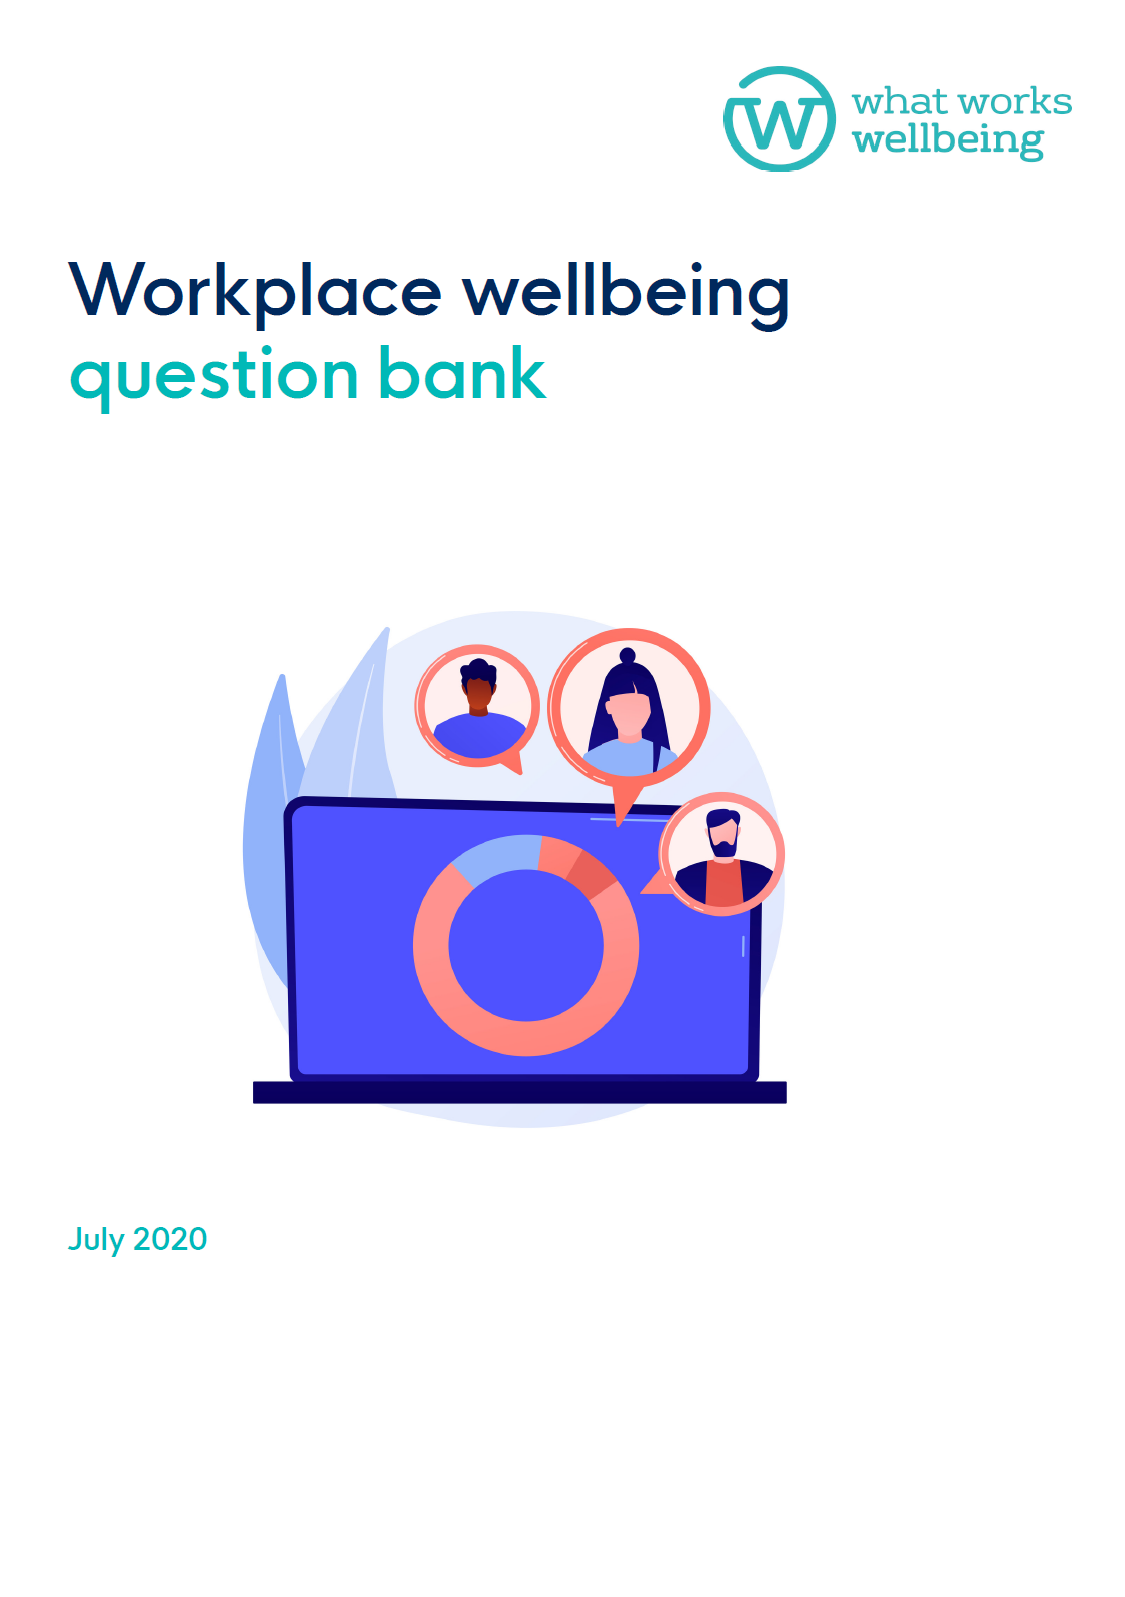 Workplace wellbeing question bank